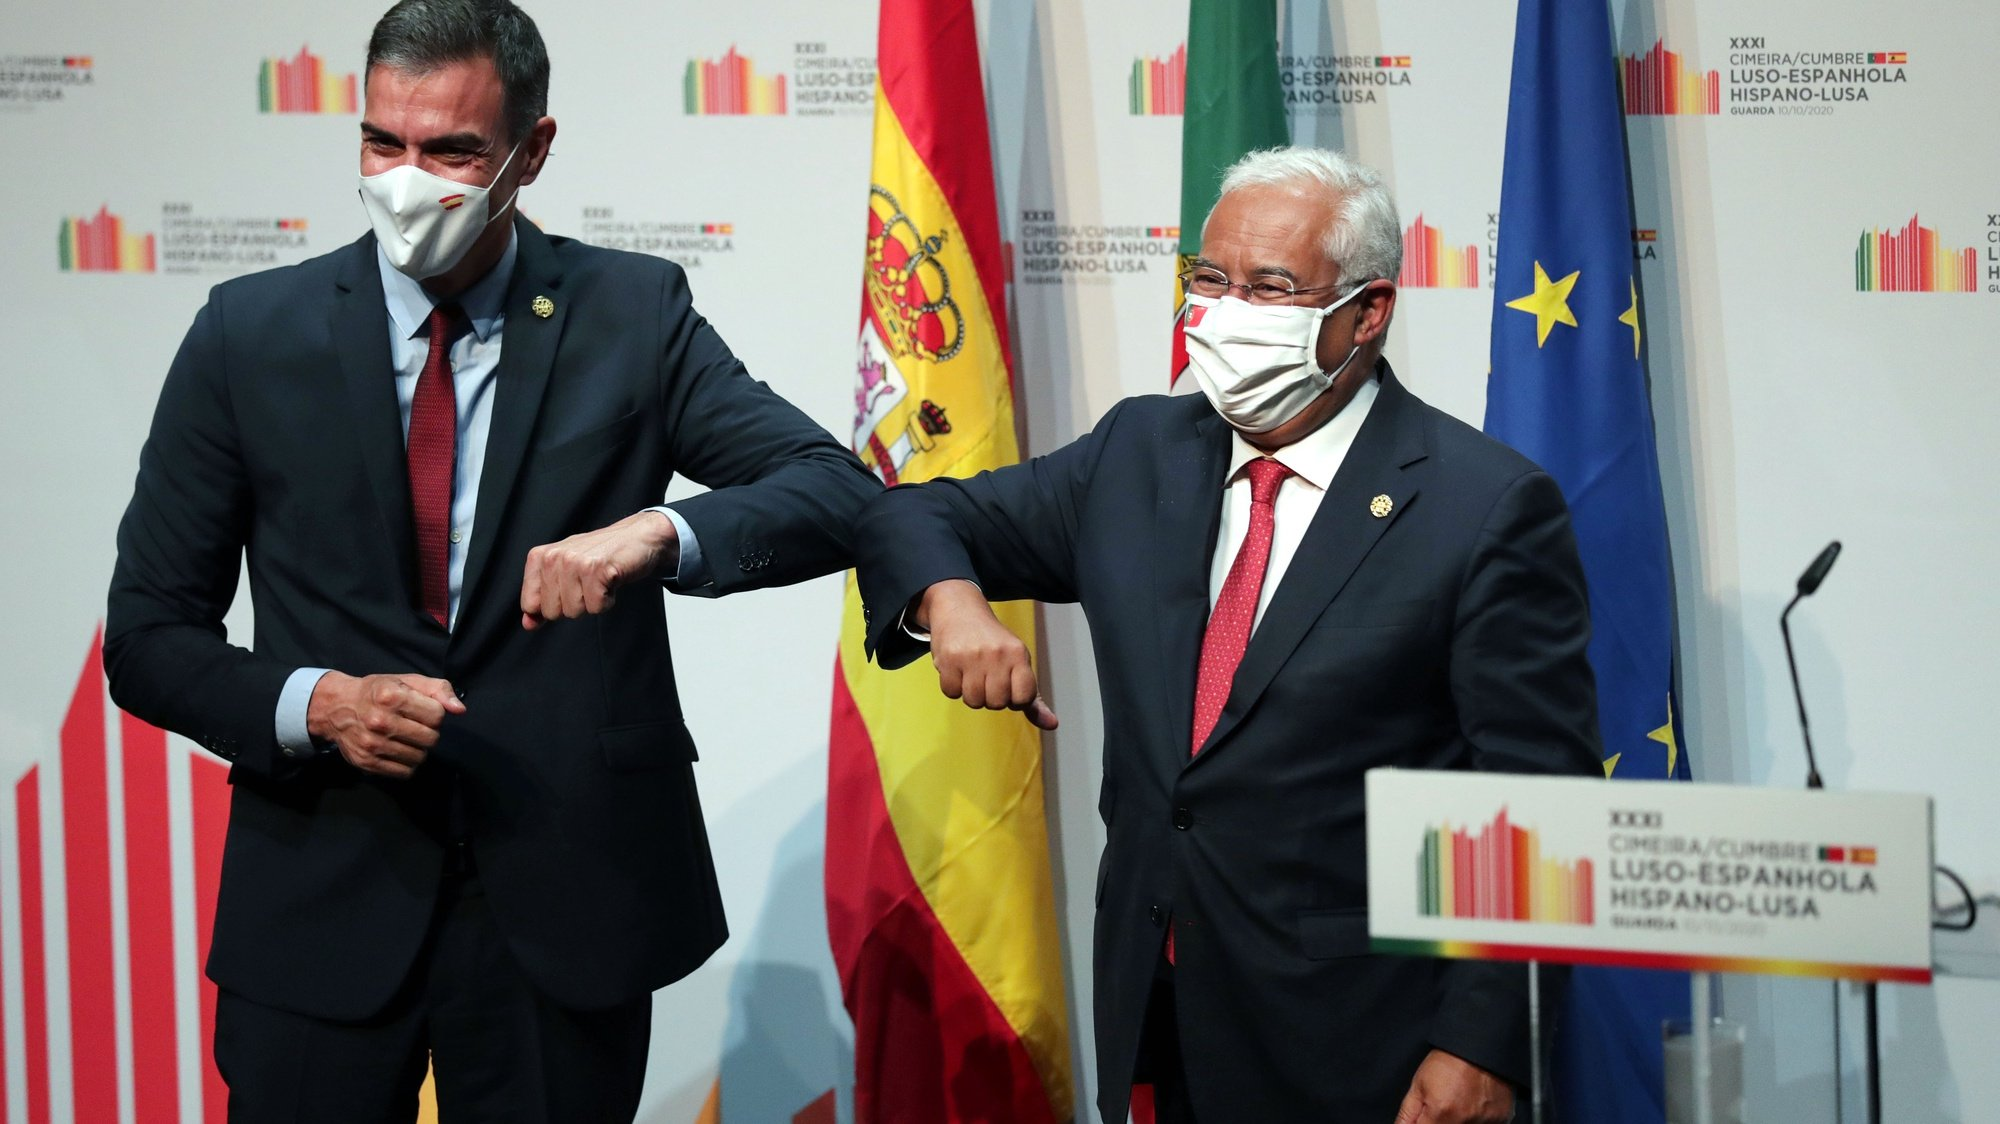 Portuguese Prime Minister, Antonio Costa (R), and his counterpart the President of the Spanish government, Pedro Sanchez (L), attend a conference during the 31th Portuguese Spanish Summit in Guarda, Portugal, 10 october 2020. Pedro Sanchez  is on a one day official visit to Guarda for the 31th Spanish-Portuguese Summit. ESTELA SILVA/LUSA